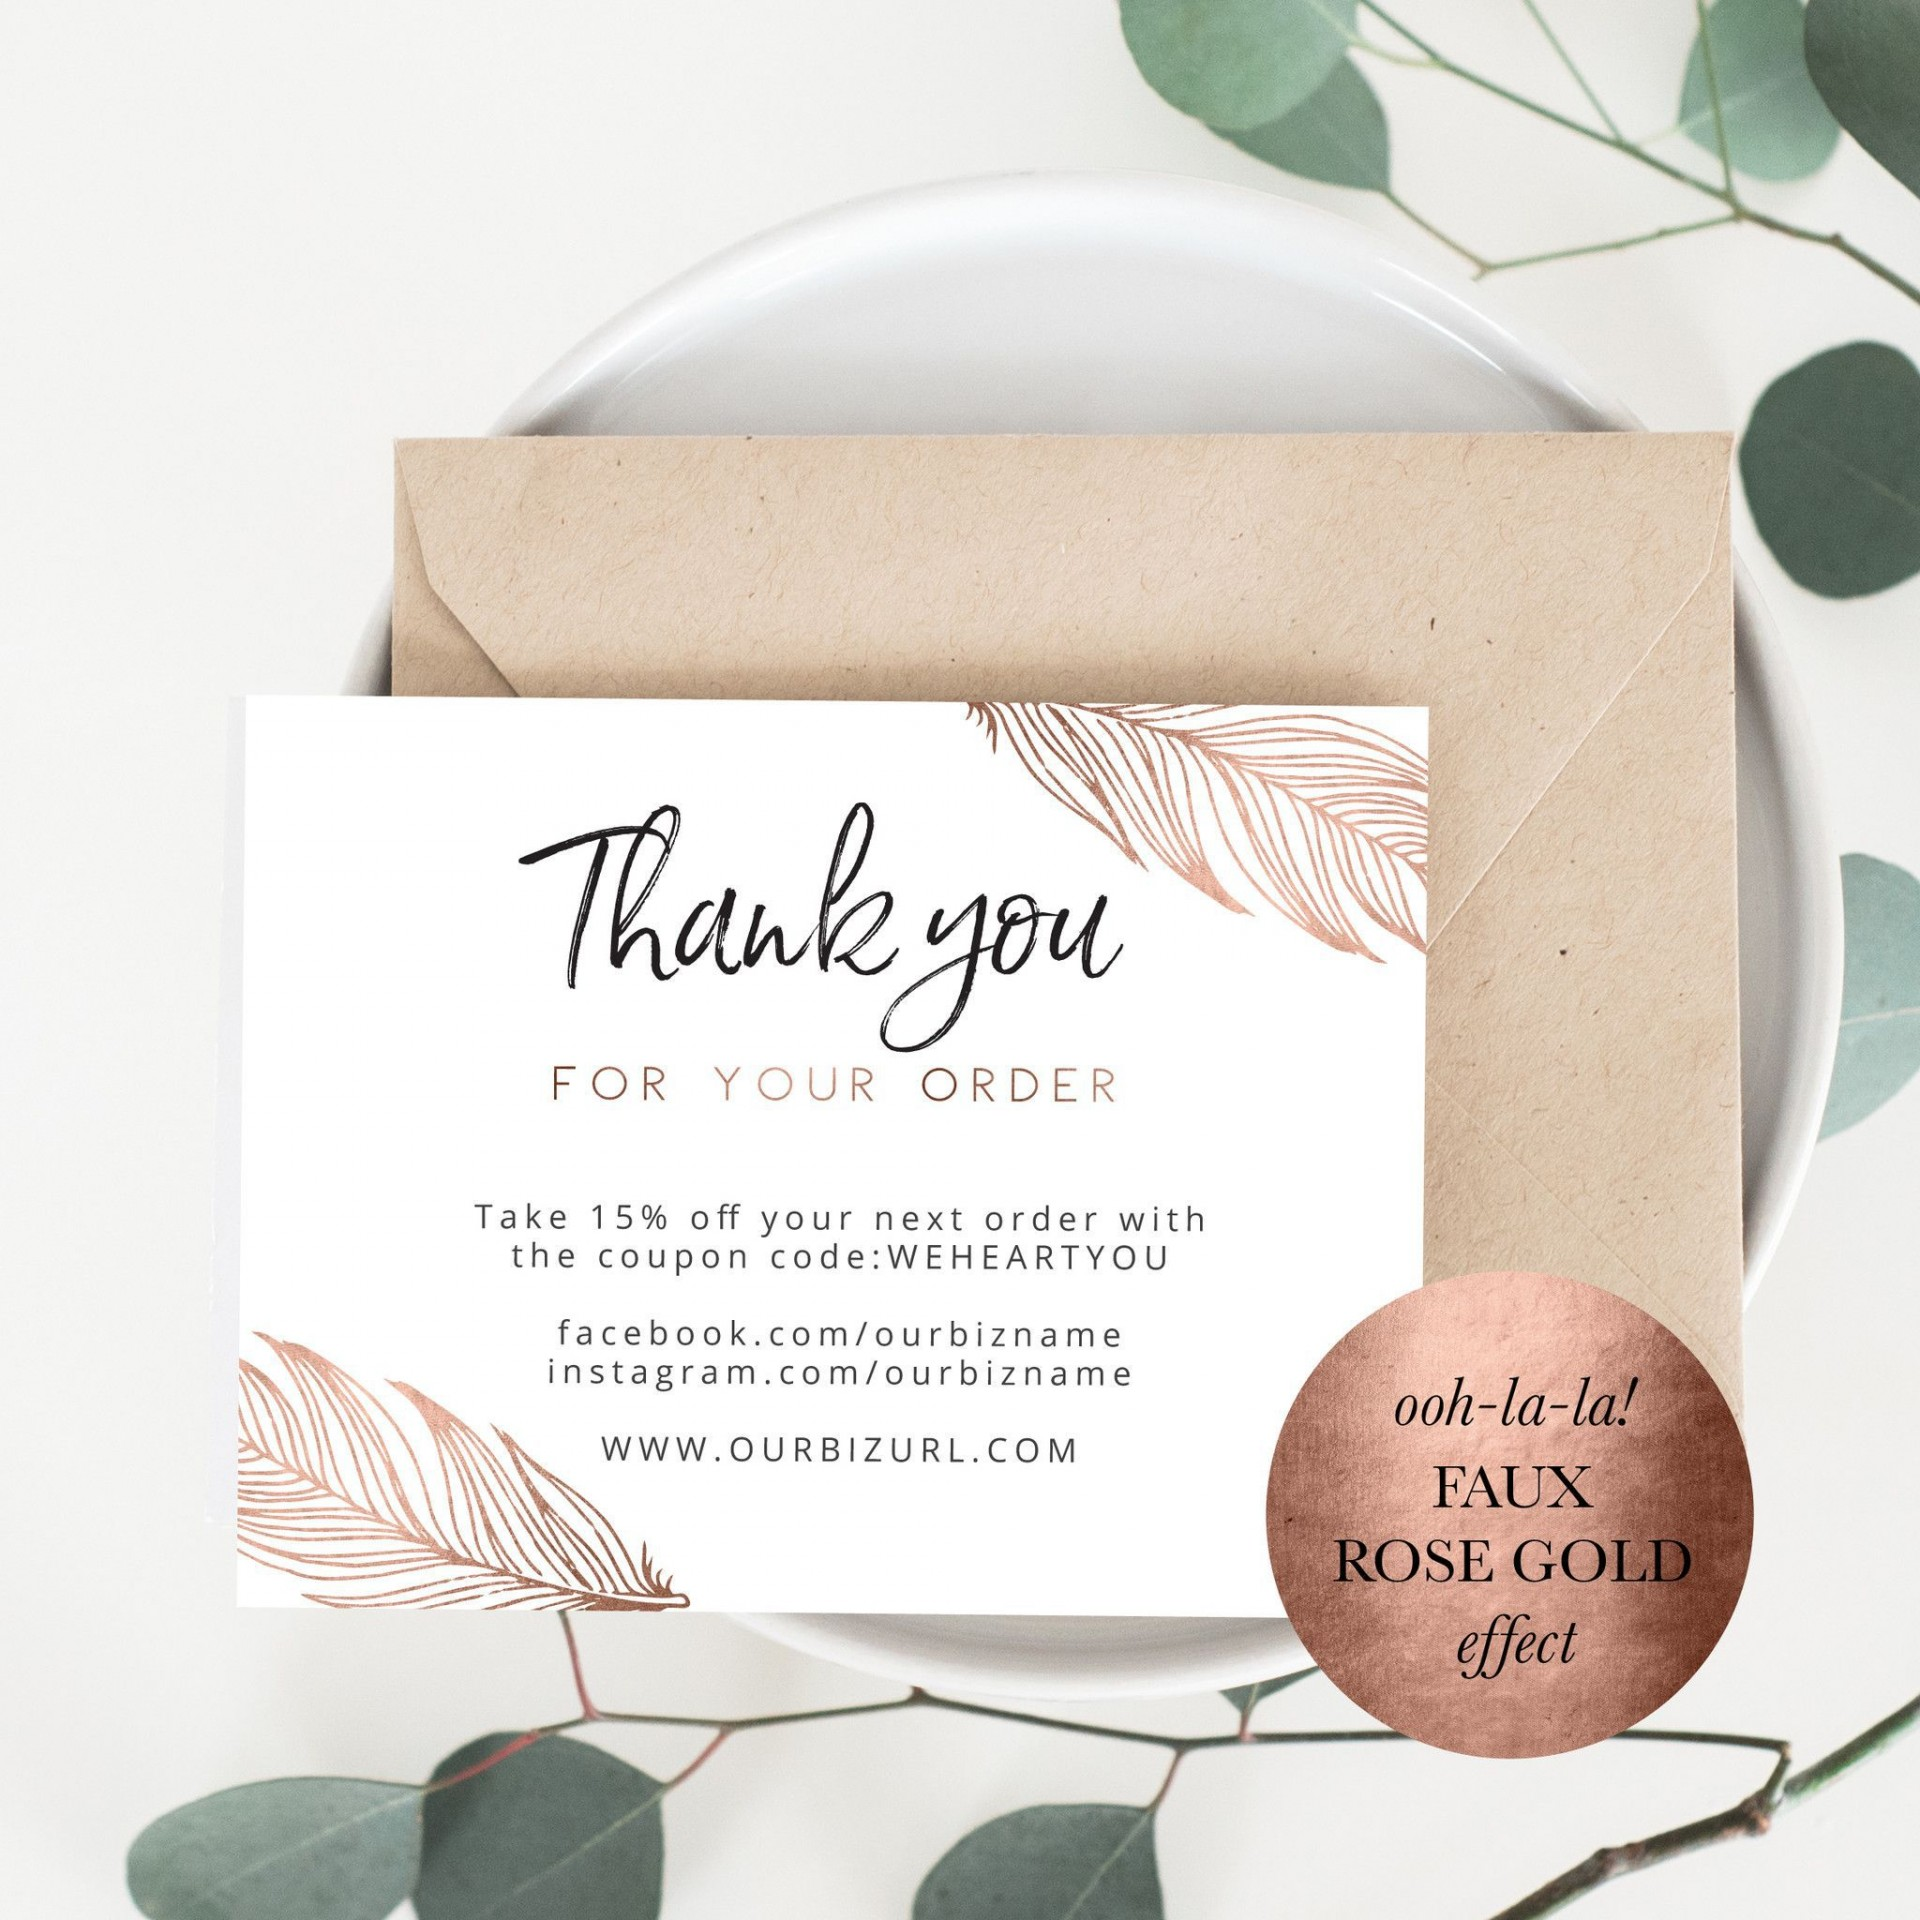 000 Phenomenal Thank You Note Template Pdf High Def  Card Free Letter Example For Student1920